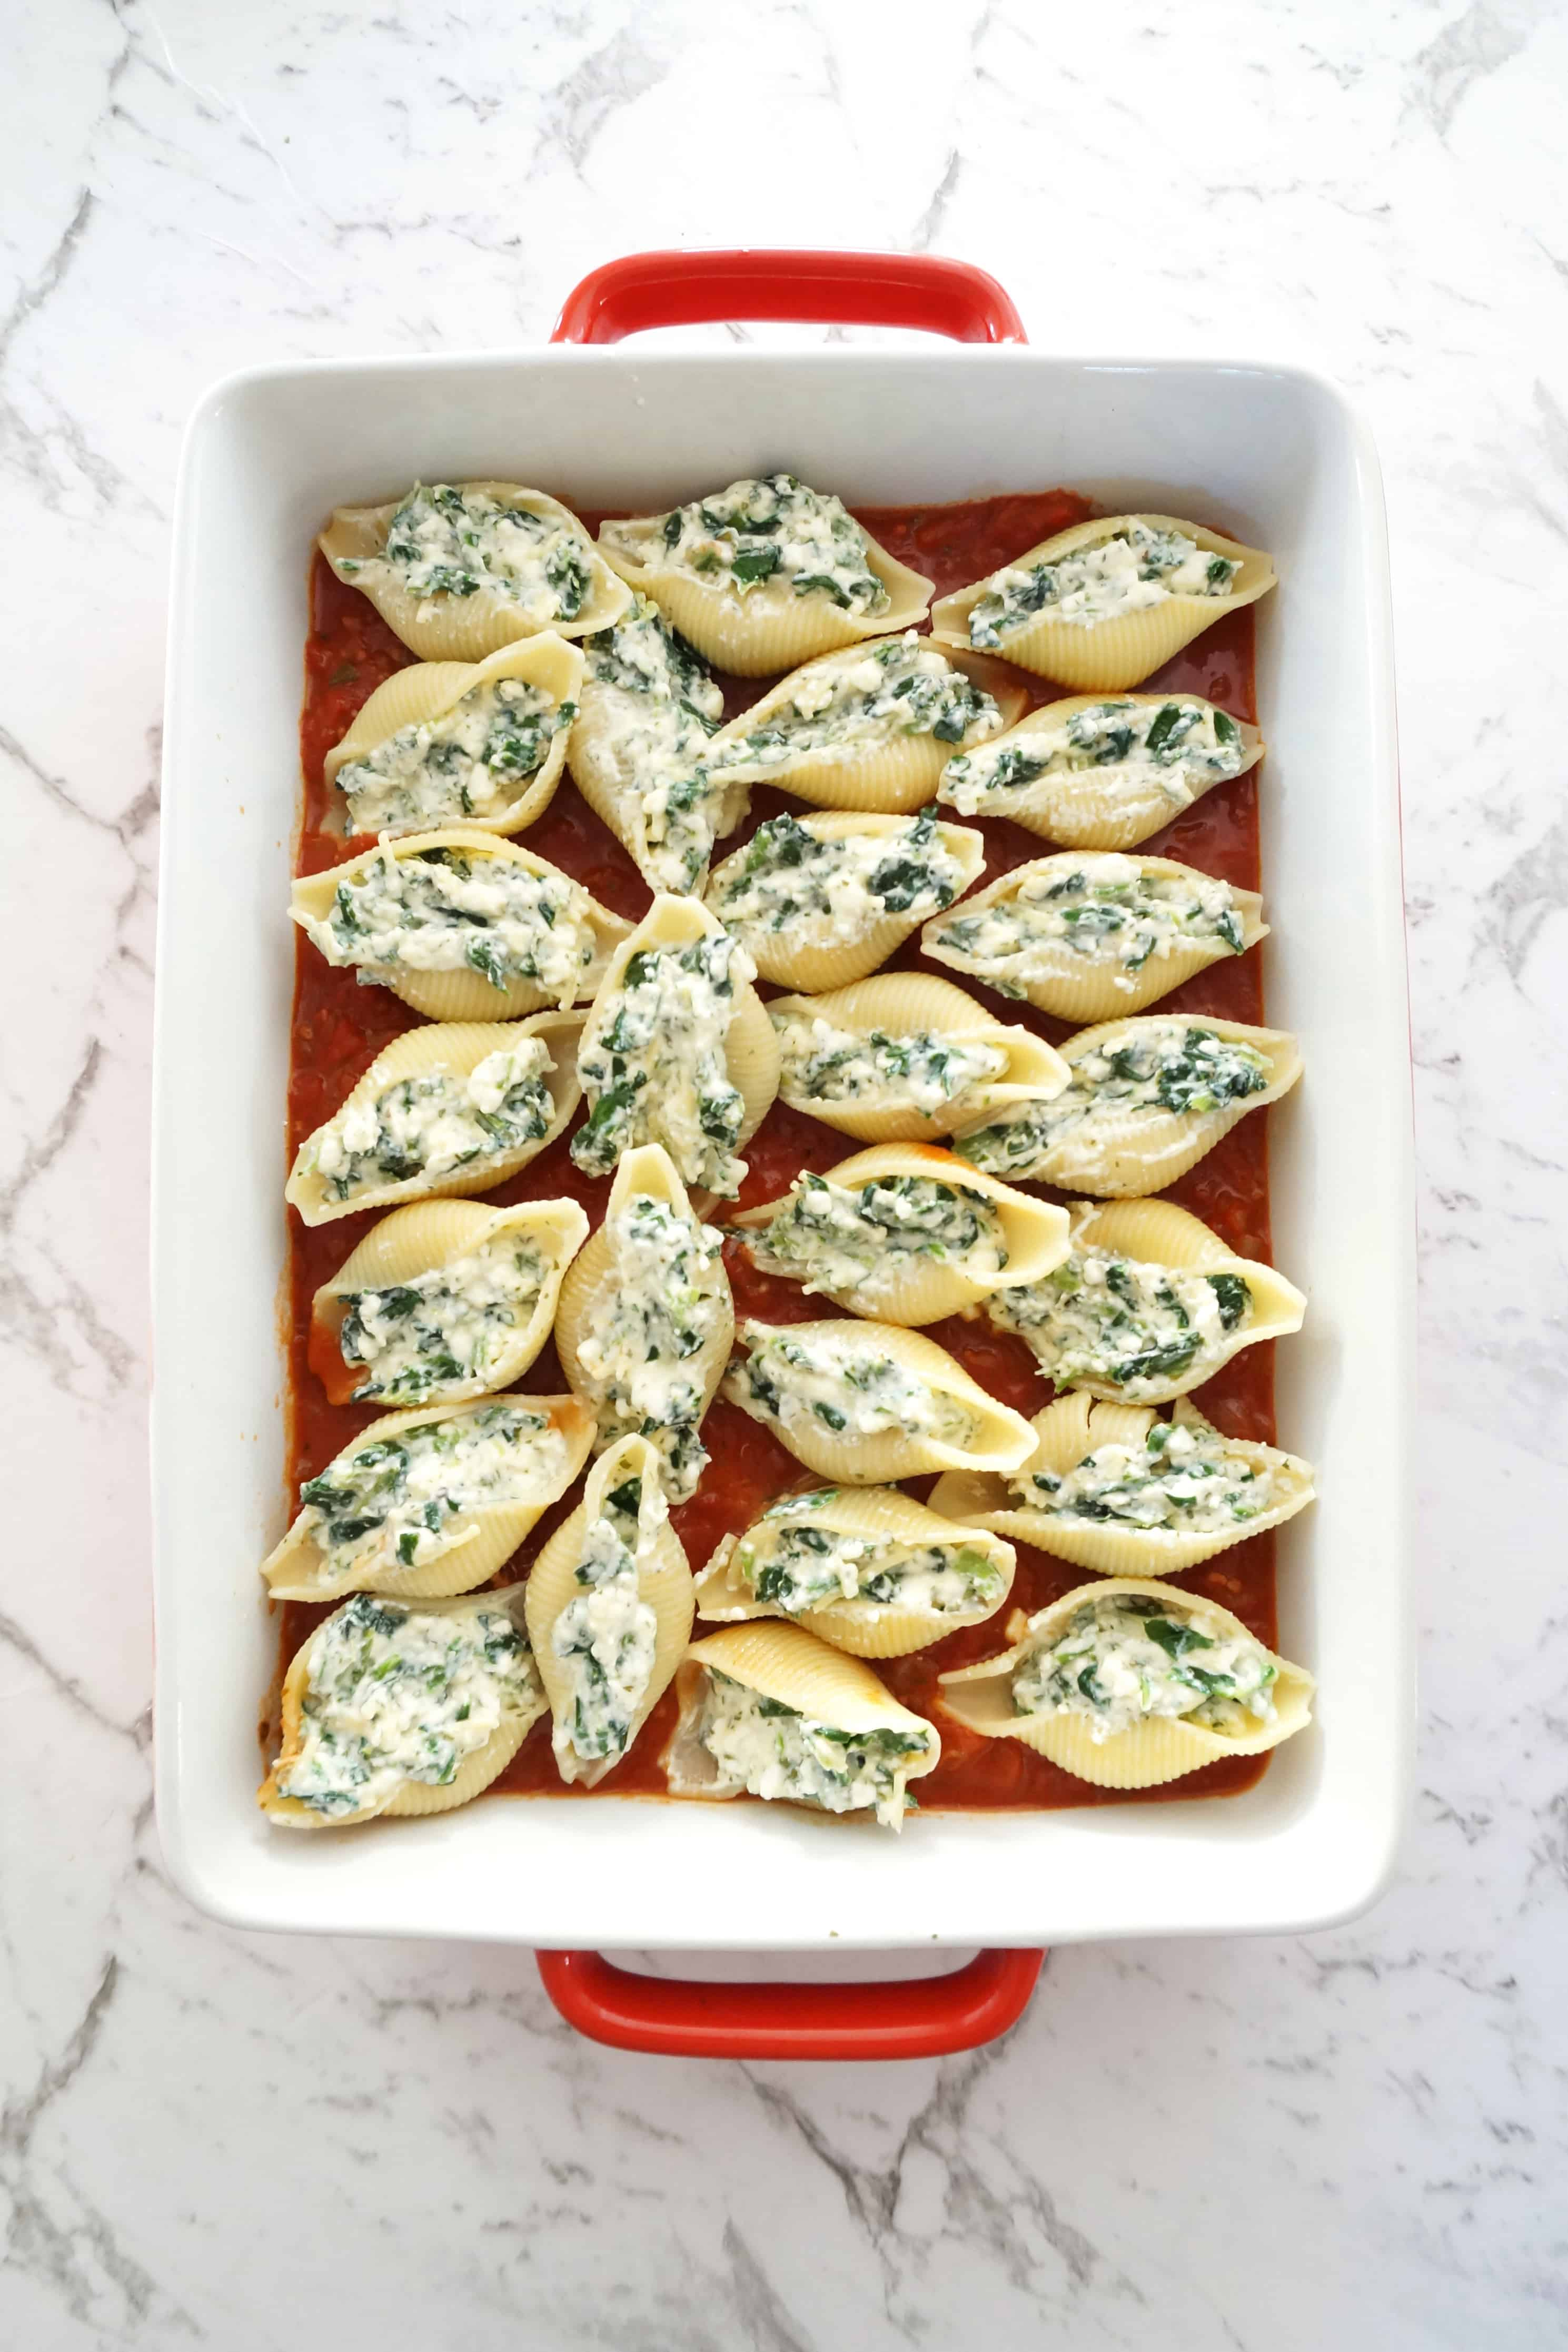 Unbaked spinach and cheese stuffed conchiglioni pasta shells in a red baking dish